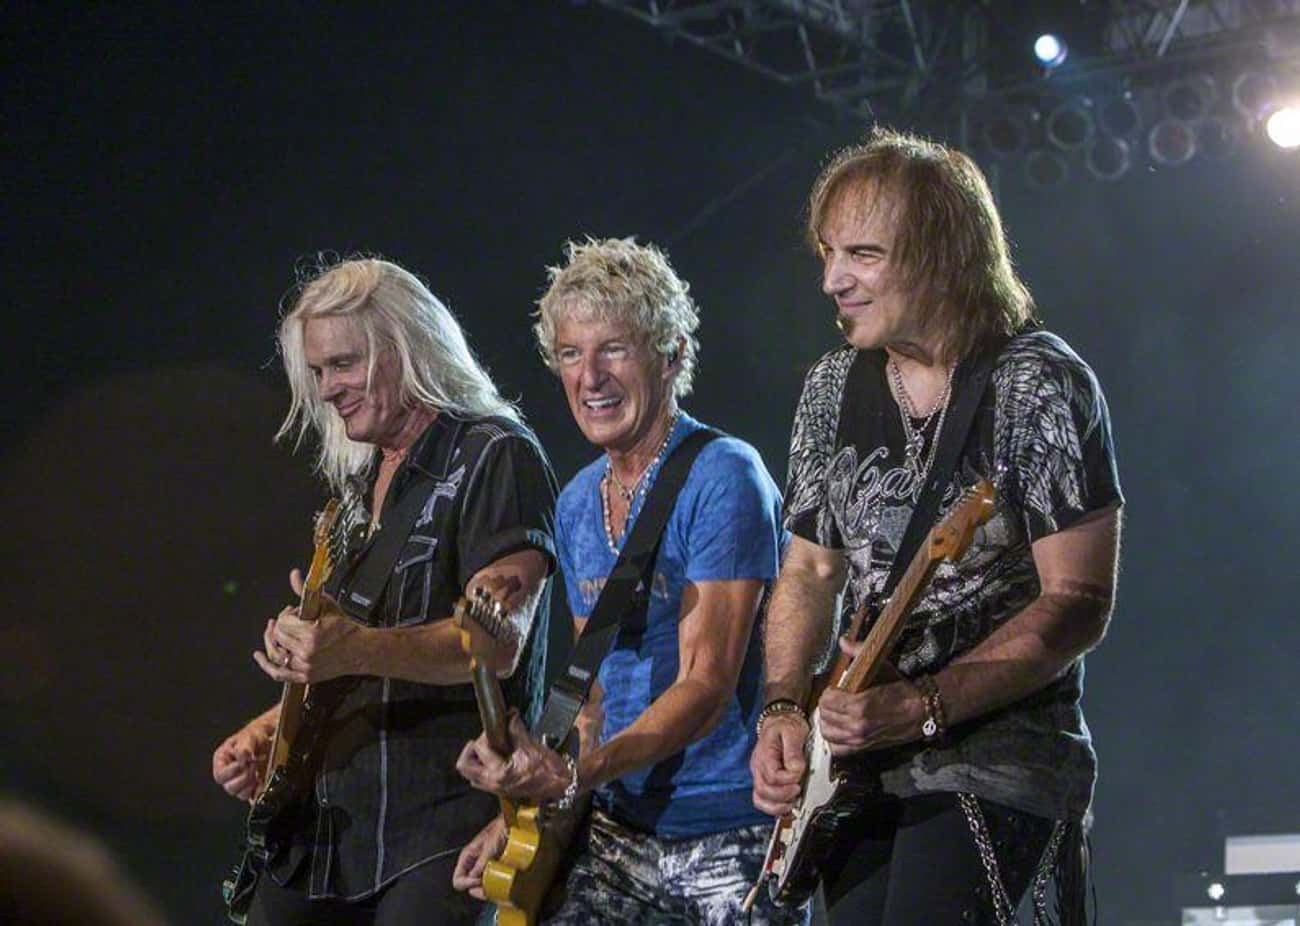 Rock Legends Cruise is listed (or ranked) 3 on the list 14 Music Cruises That Really Rock